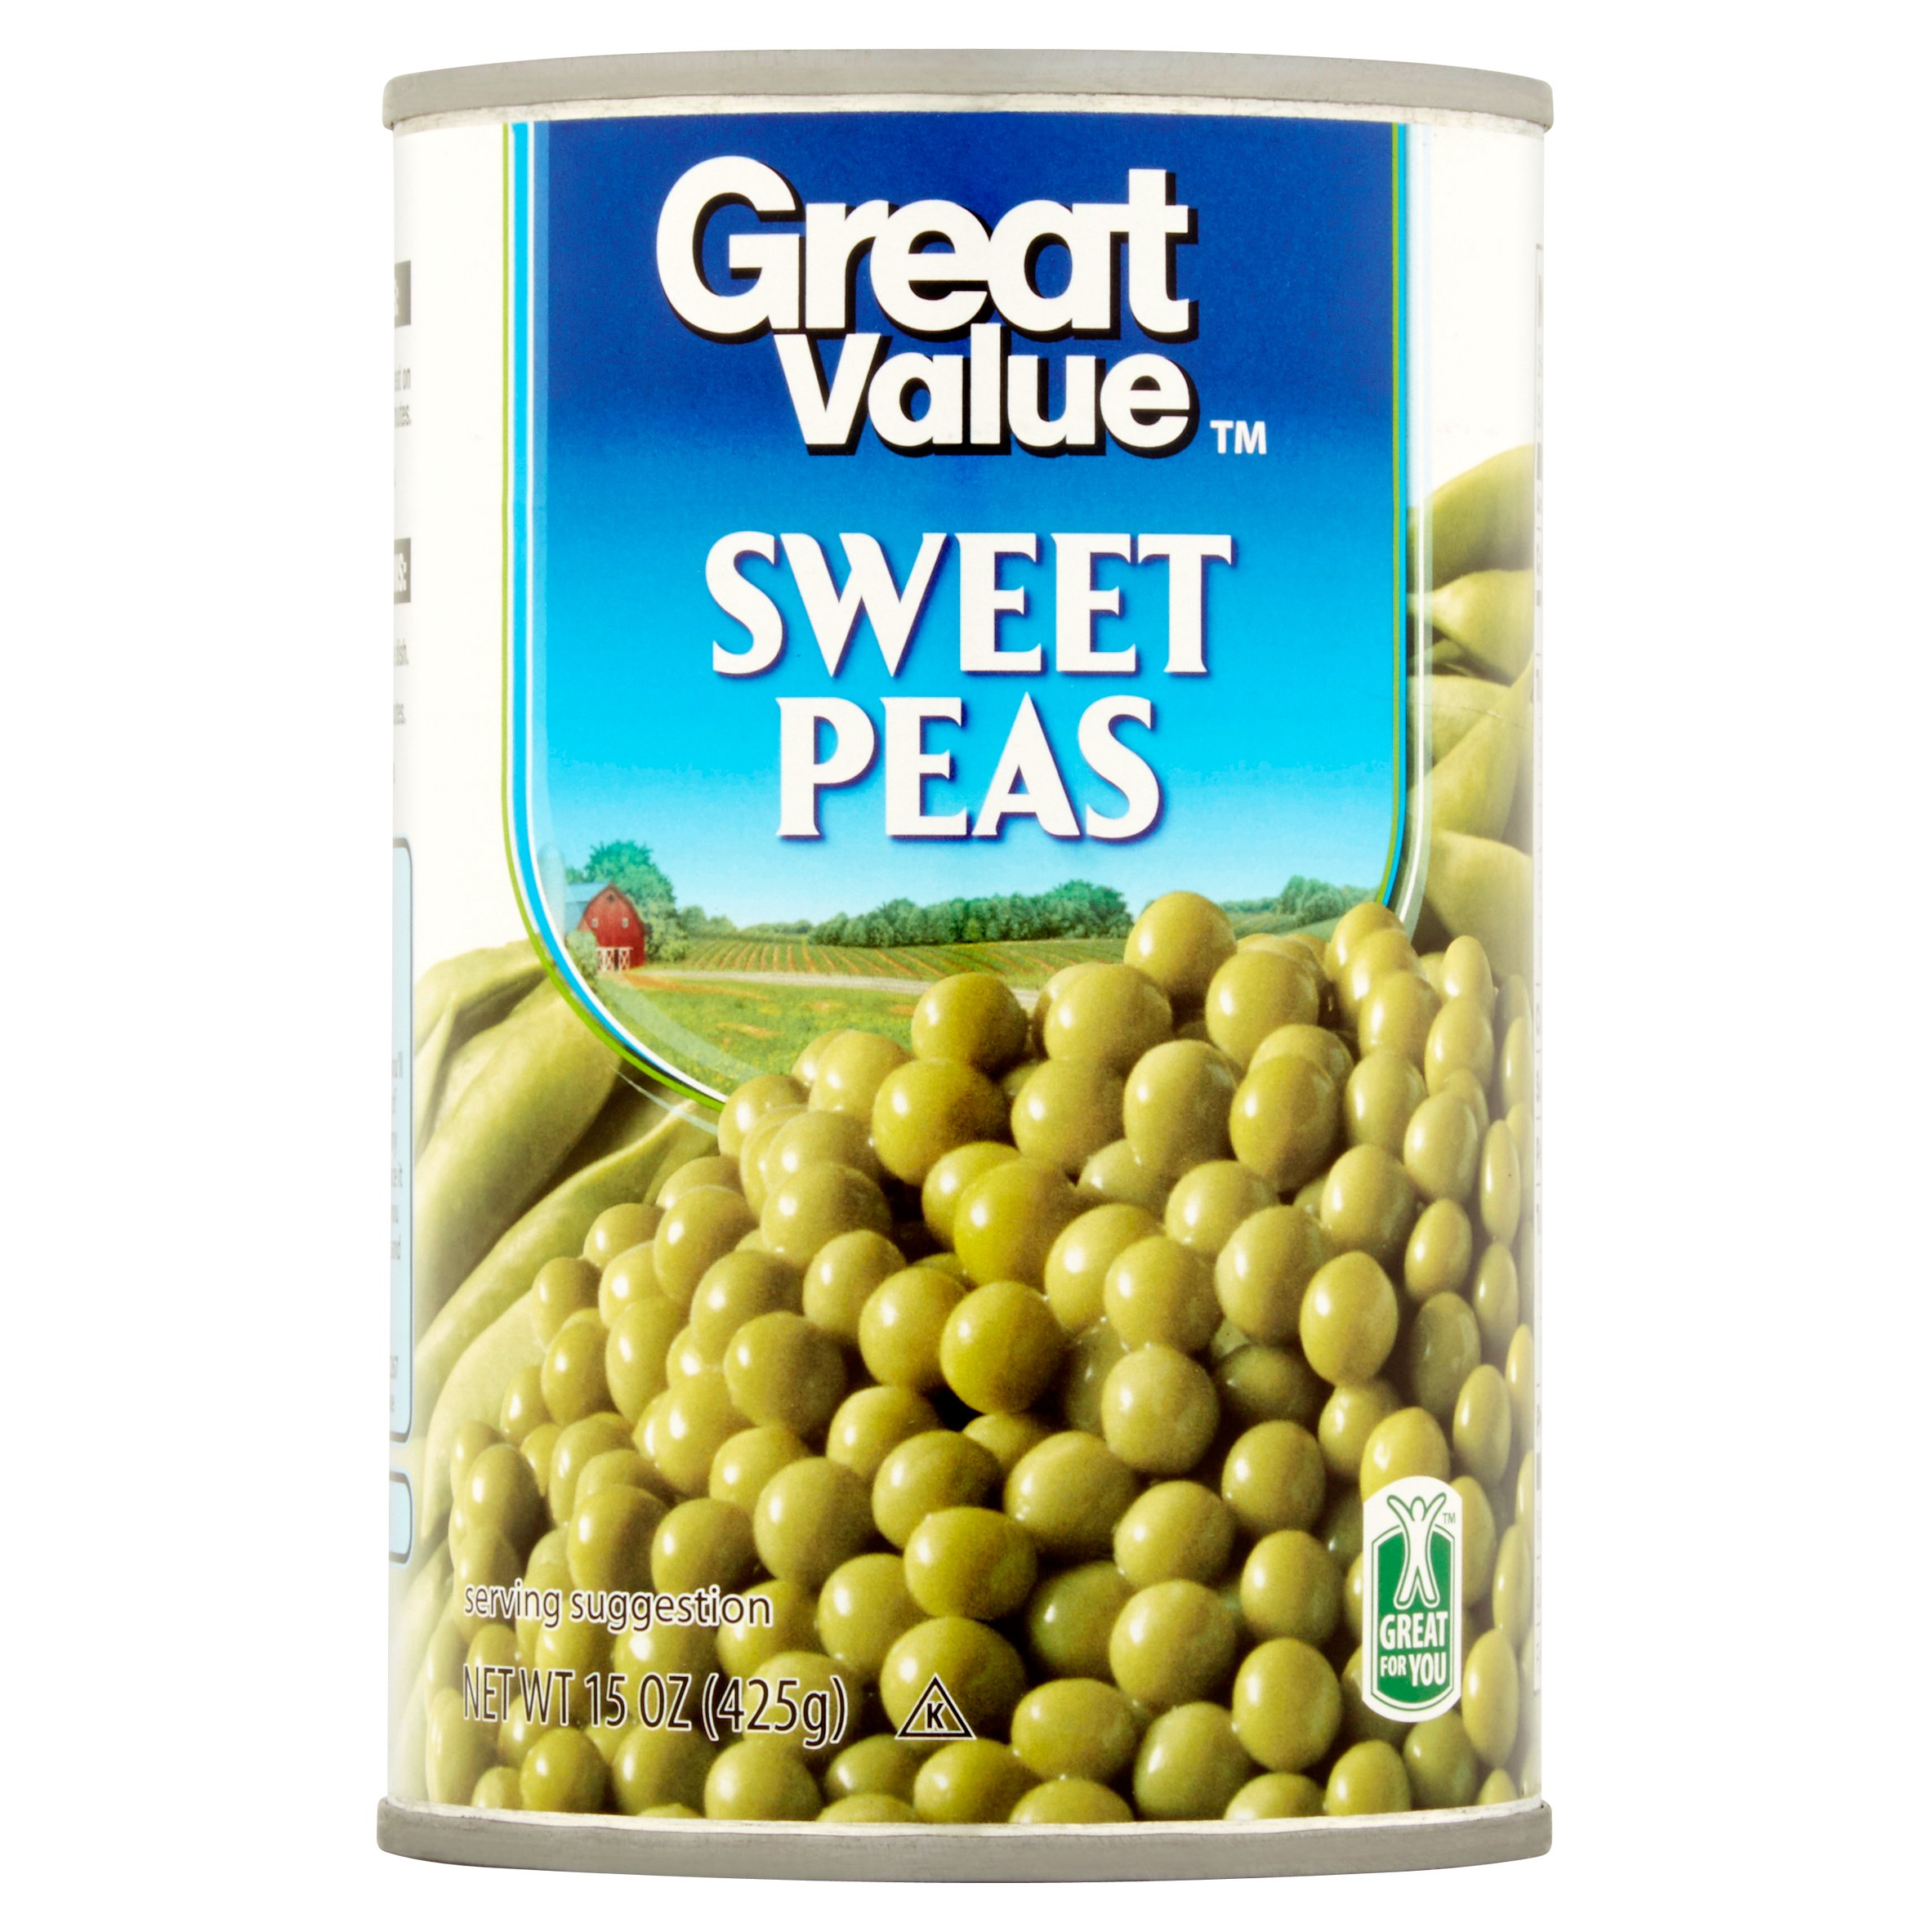 Great Value Sweet Peas, 15 Oz by Wal-Mart Stores, Inc.